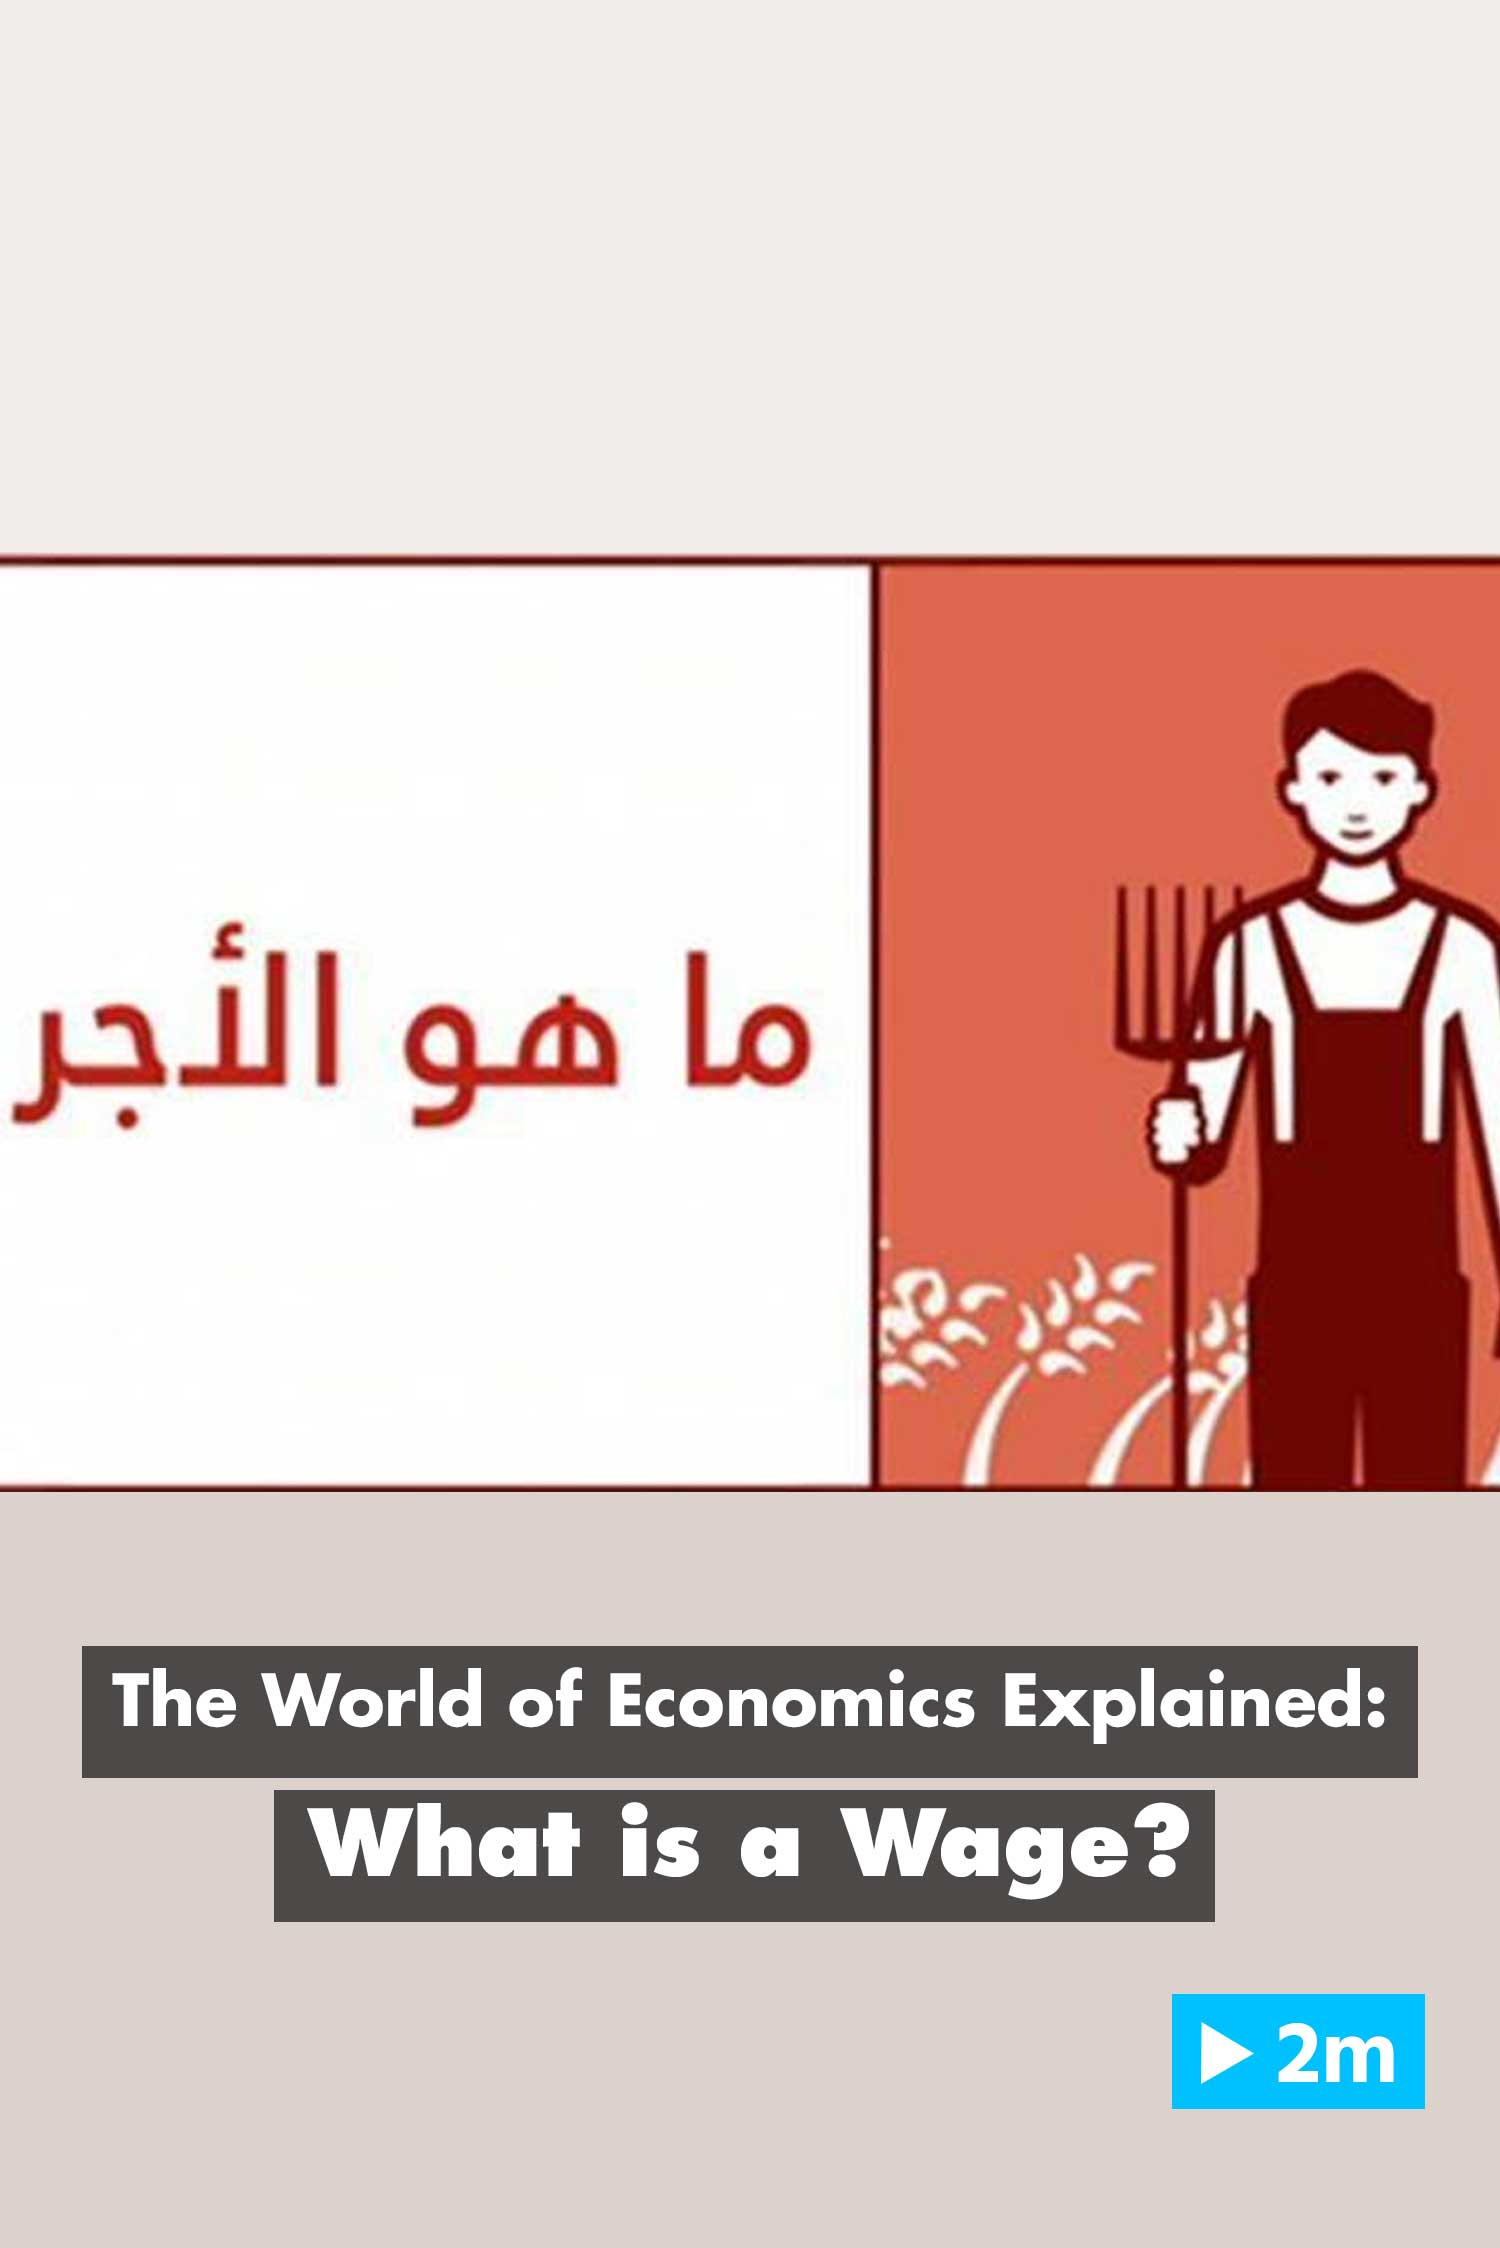 The World of Economics Explained: What is a wage?